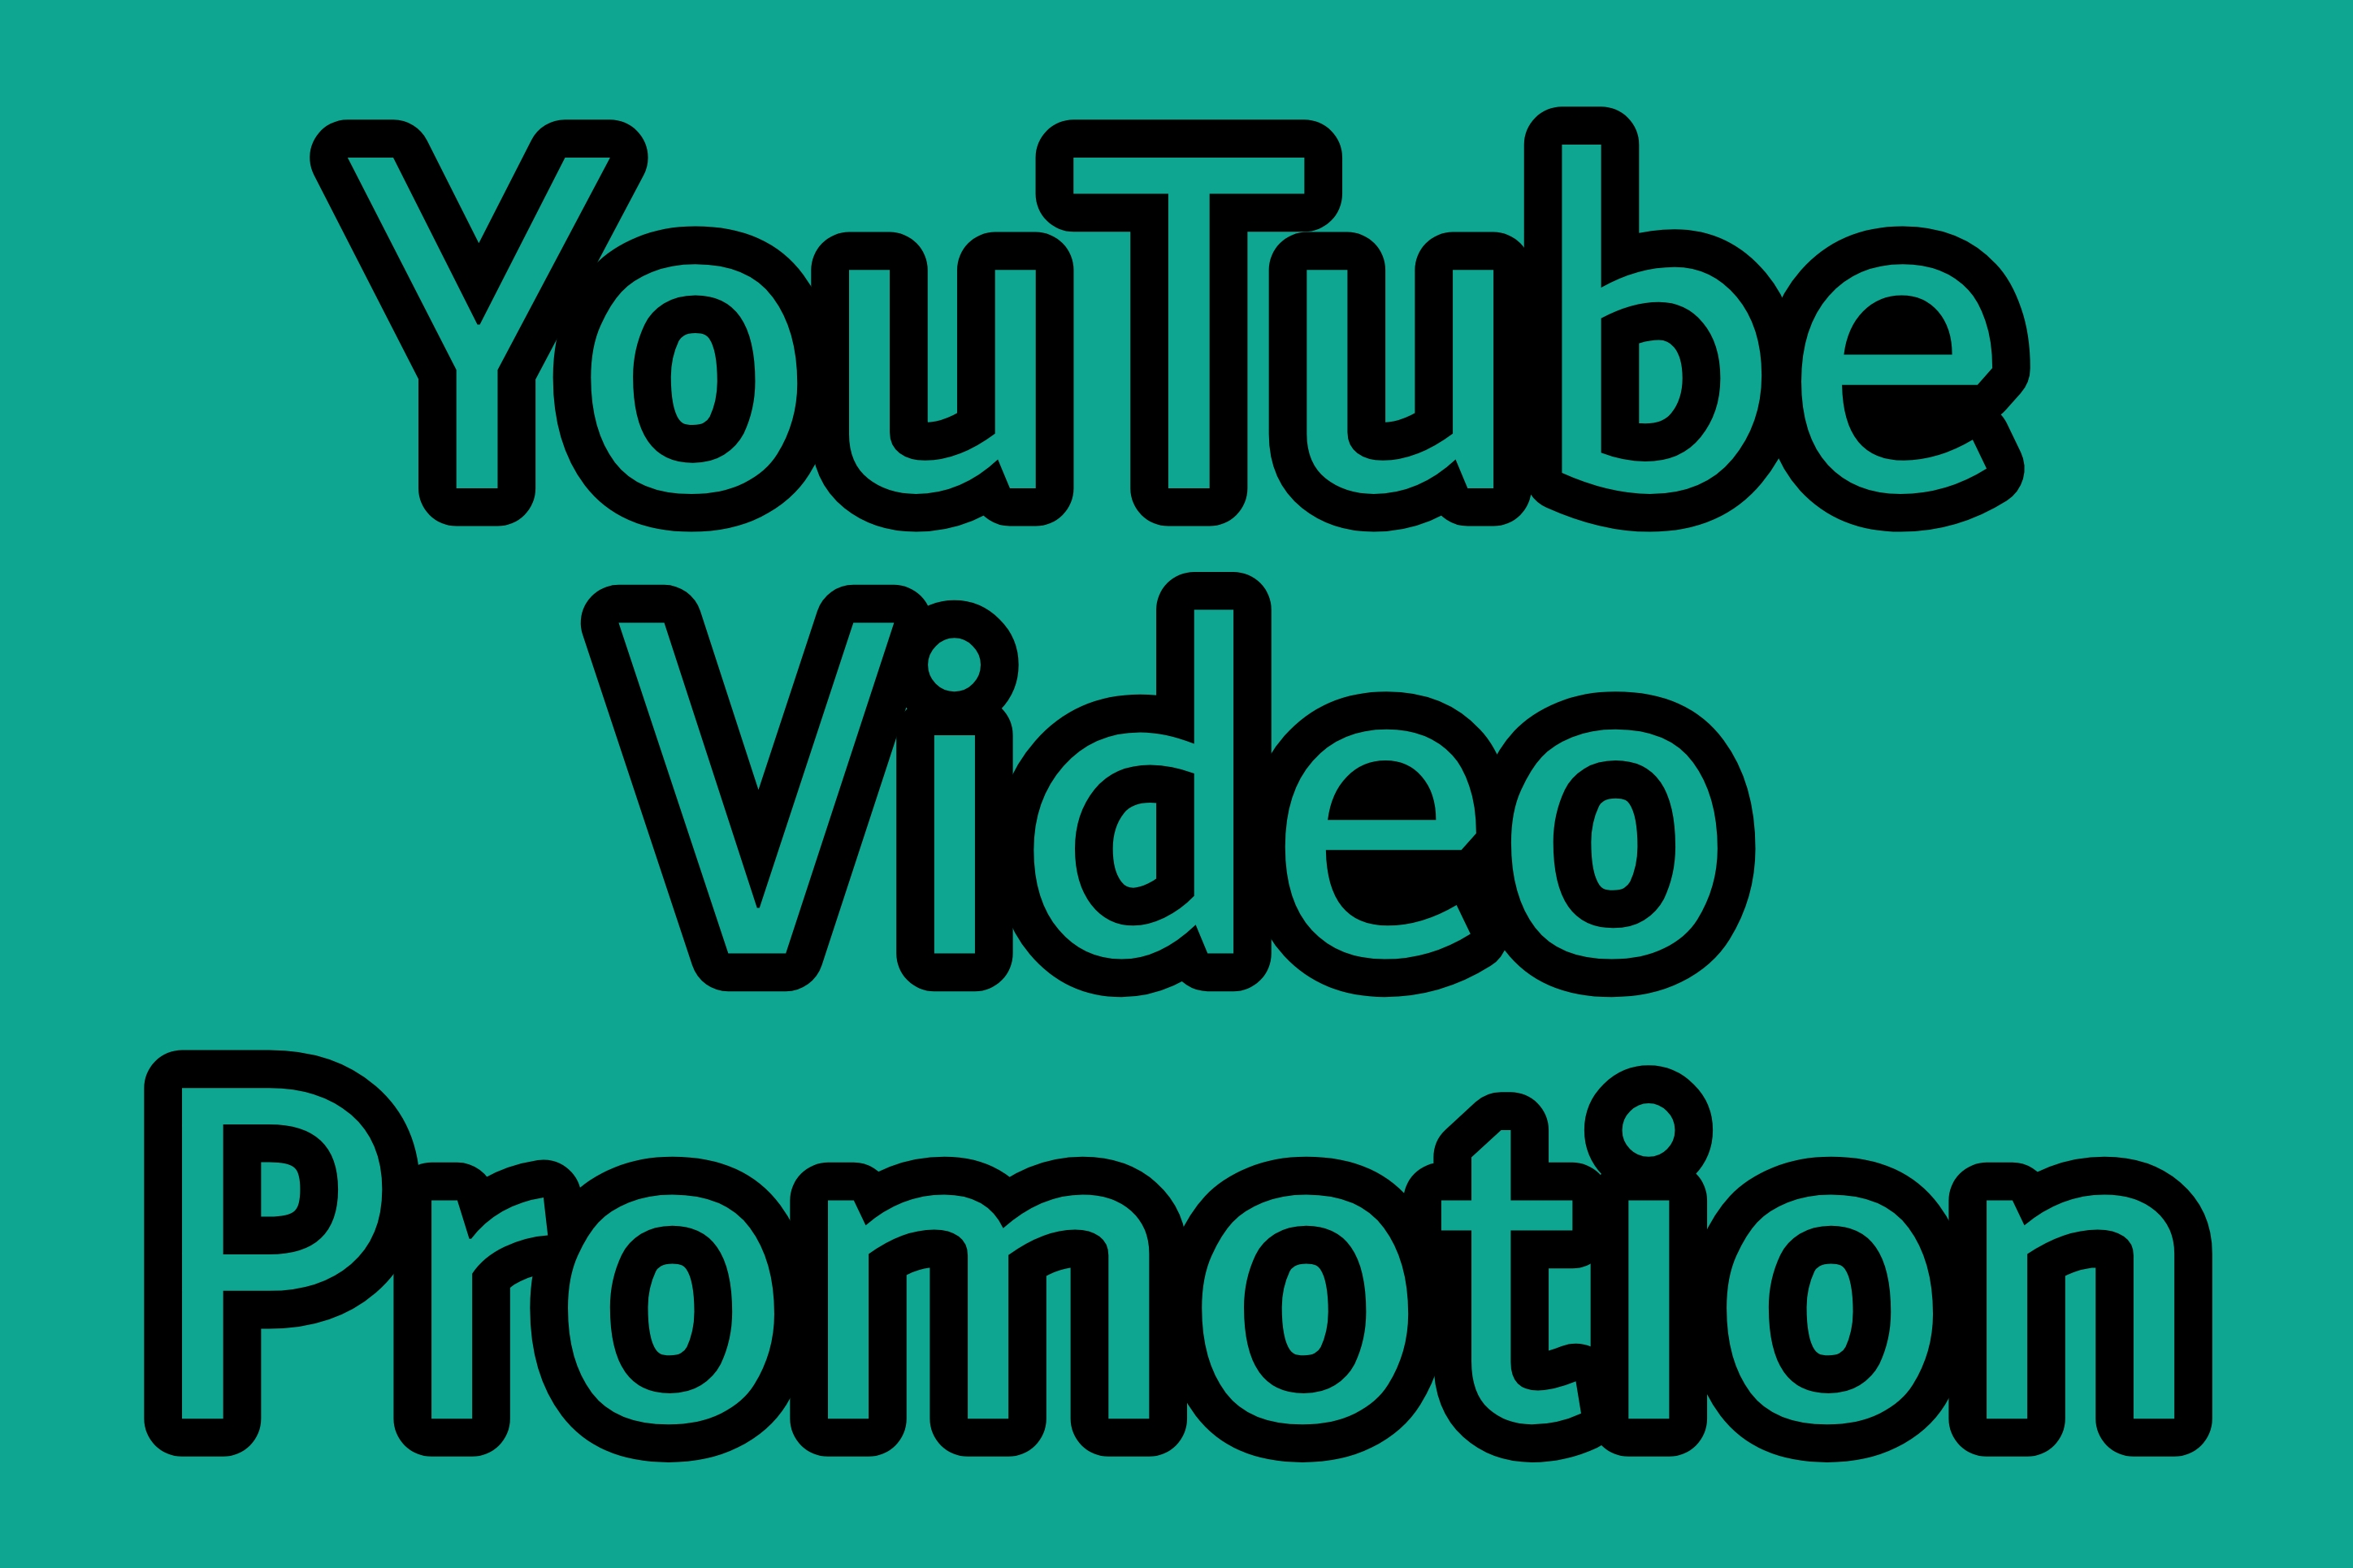 I Give Youtube Video Promotion By Real Users Only